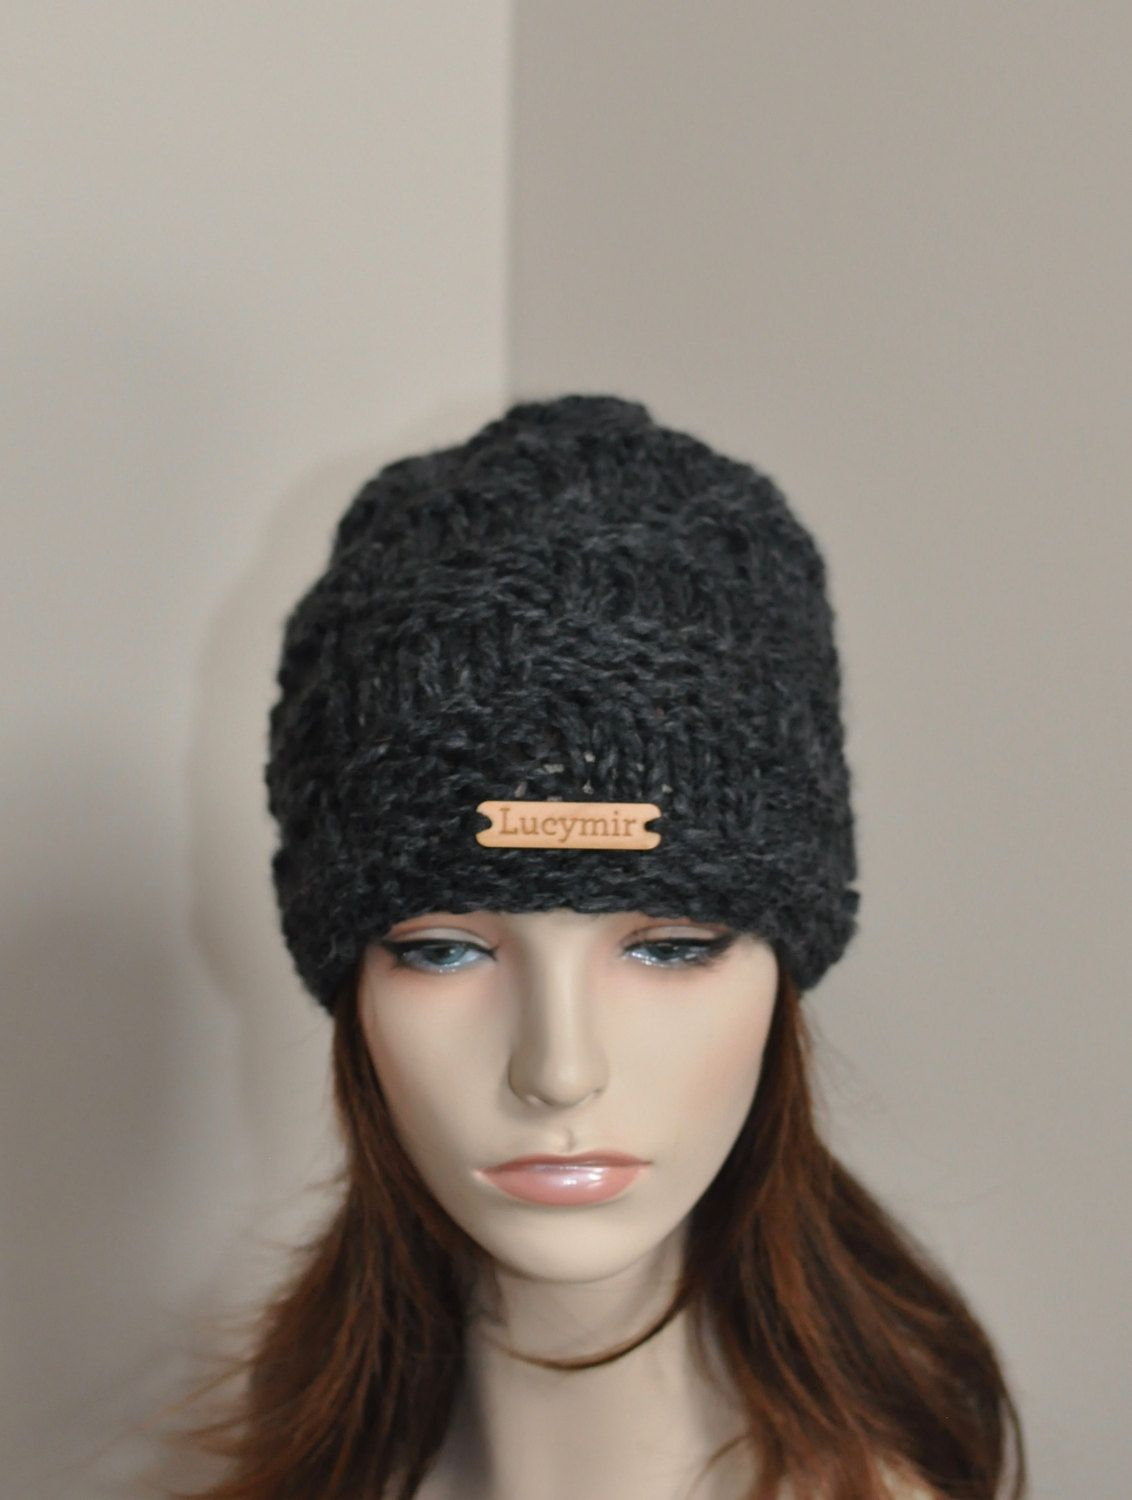 c441bdc7c5b Slouchy Beanie Hat Chunky Slouchy Hat Knitted Women Hat Winter Hat CHOOSE  COLOR Charcoal Dark Gray Chunky Hand Knit Christmas Gift by lucymir on Etsy